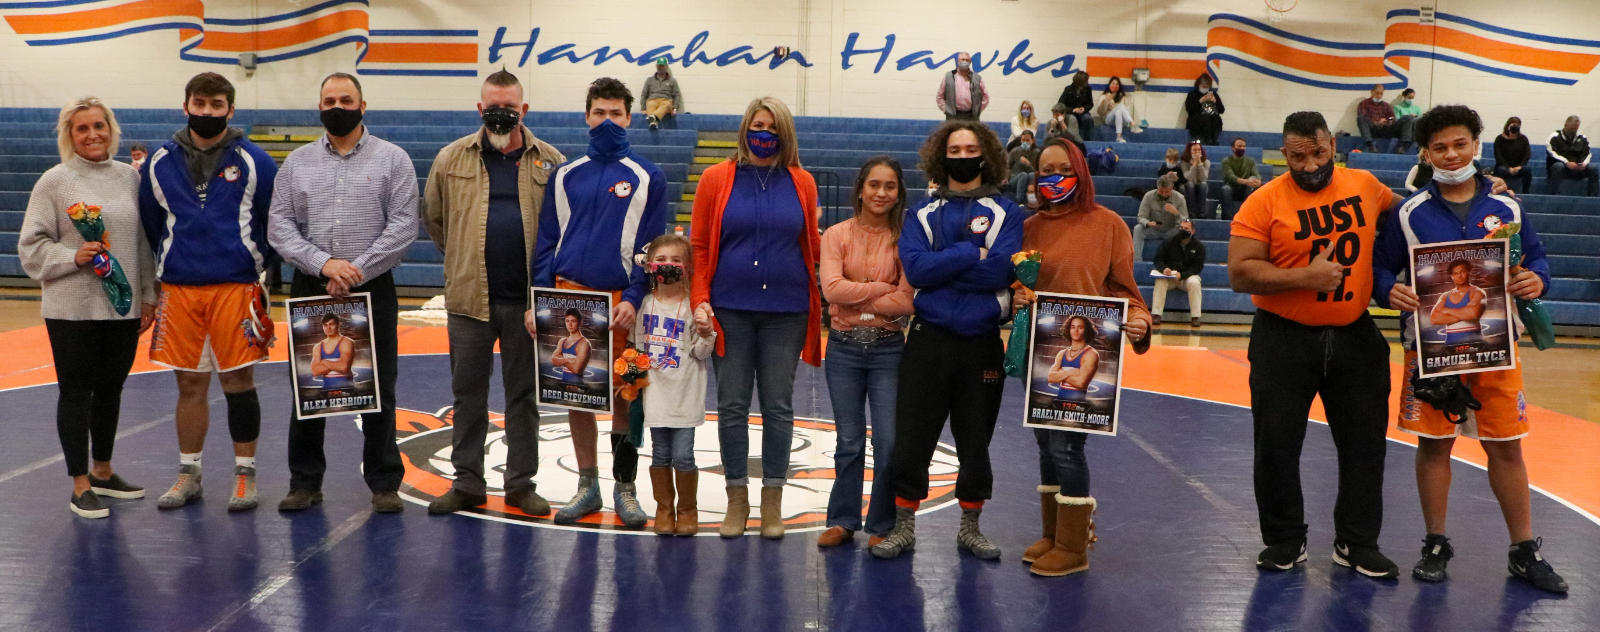 1.13.2021 (PHOTO GALLERY):  Hanahan Varsity Wrestling vs Bishop England – Photos by Cyril Samonte